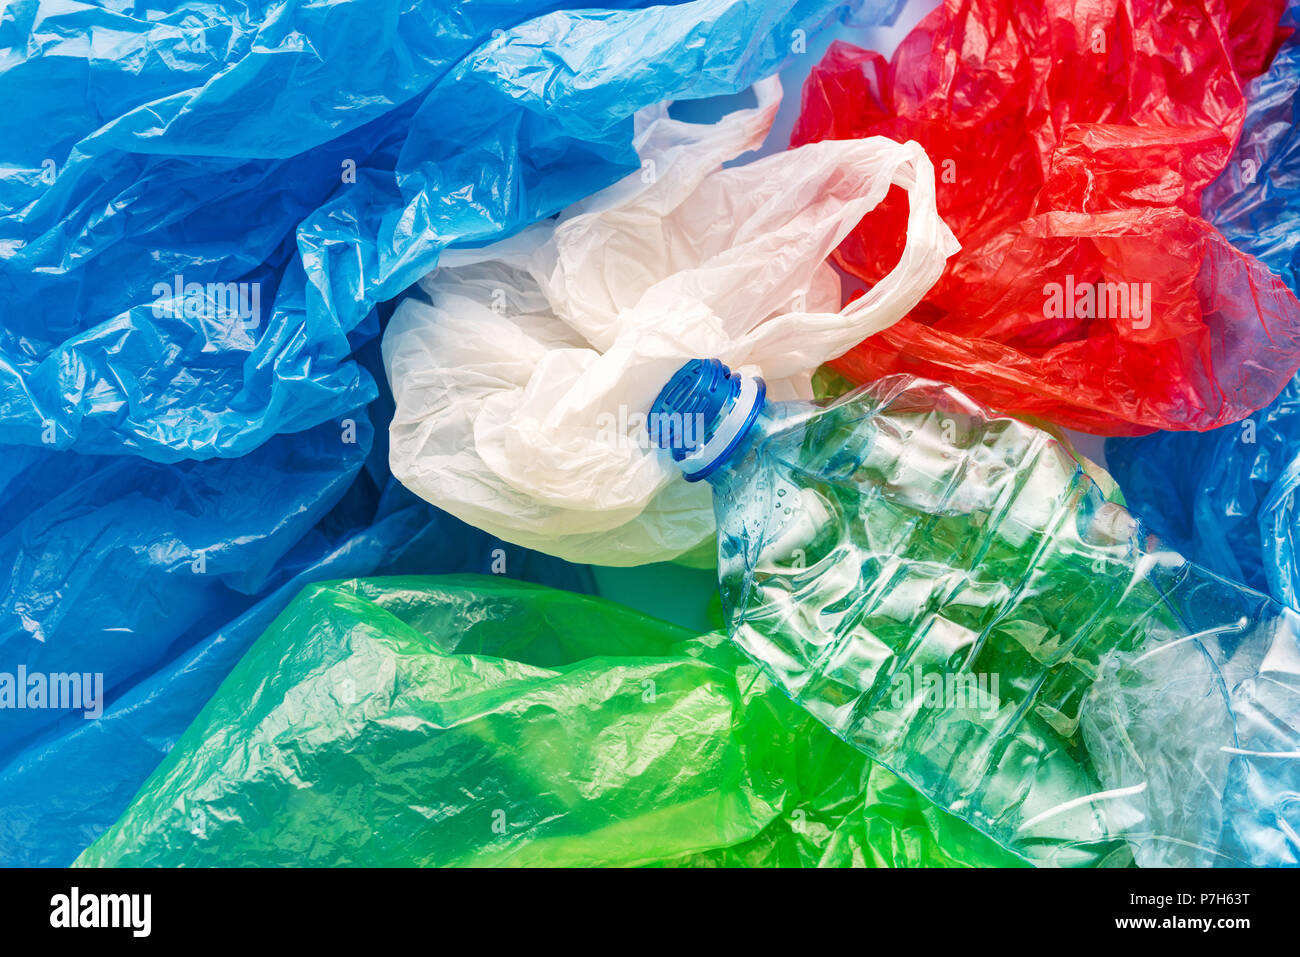 Pile of colorful plastic bags and bottle, consumerism and environmental pollution concept - Stock Image